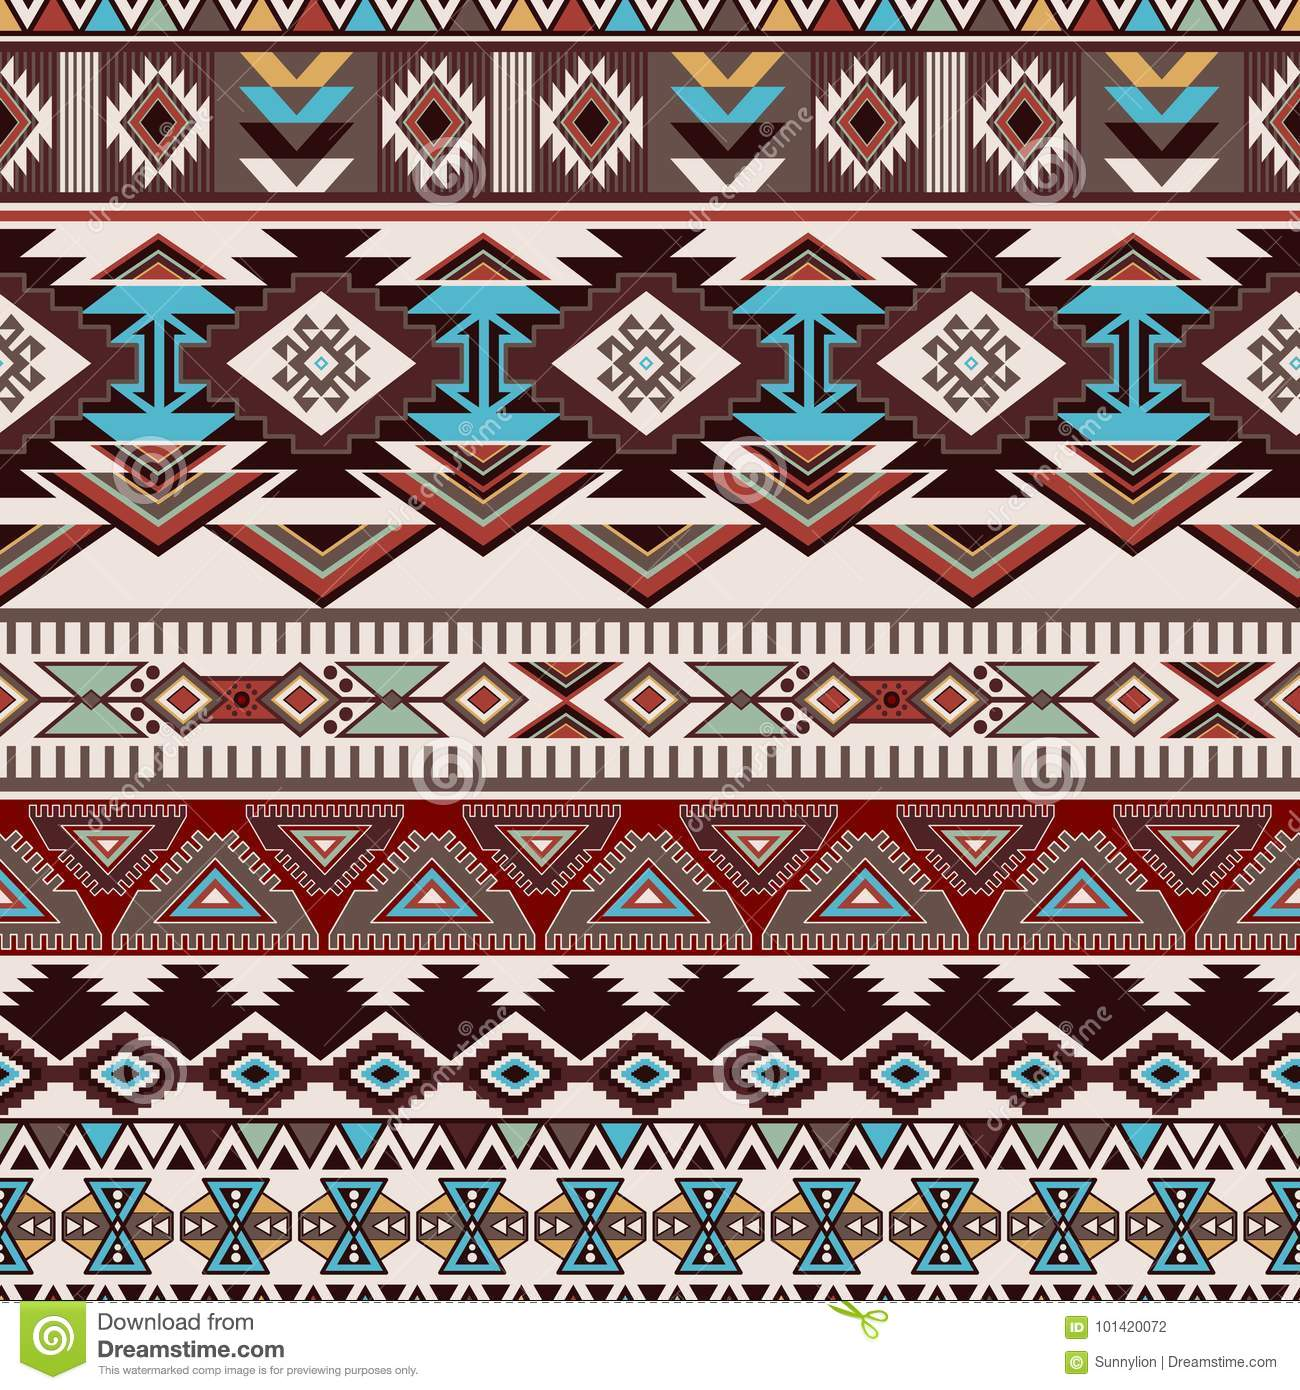 Geometric ornament for ceramics, wallpaper, textile, web, cards. Ethnic pattern. Border ornament. Native american design. Mexican motif Aztec ornament